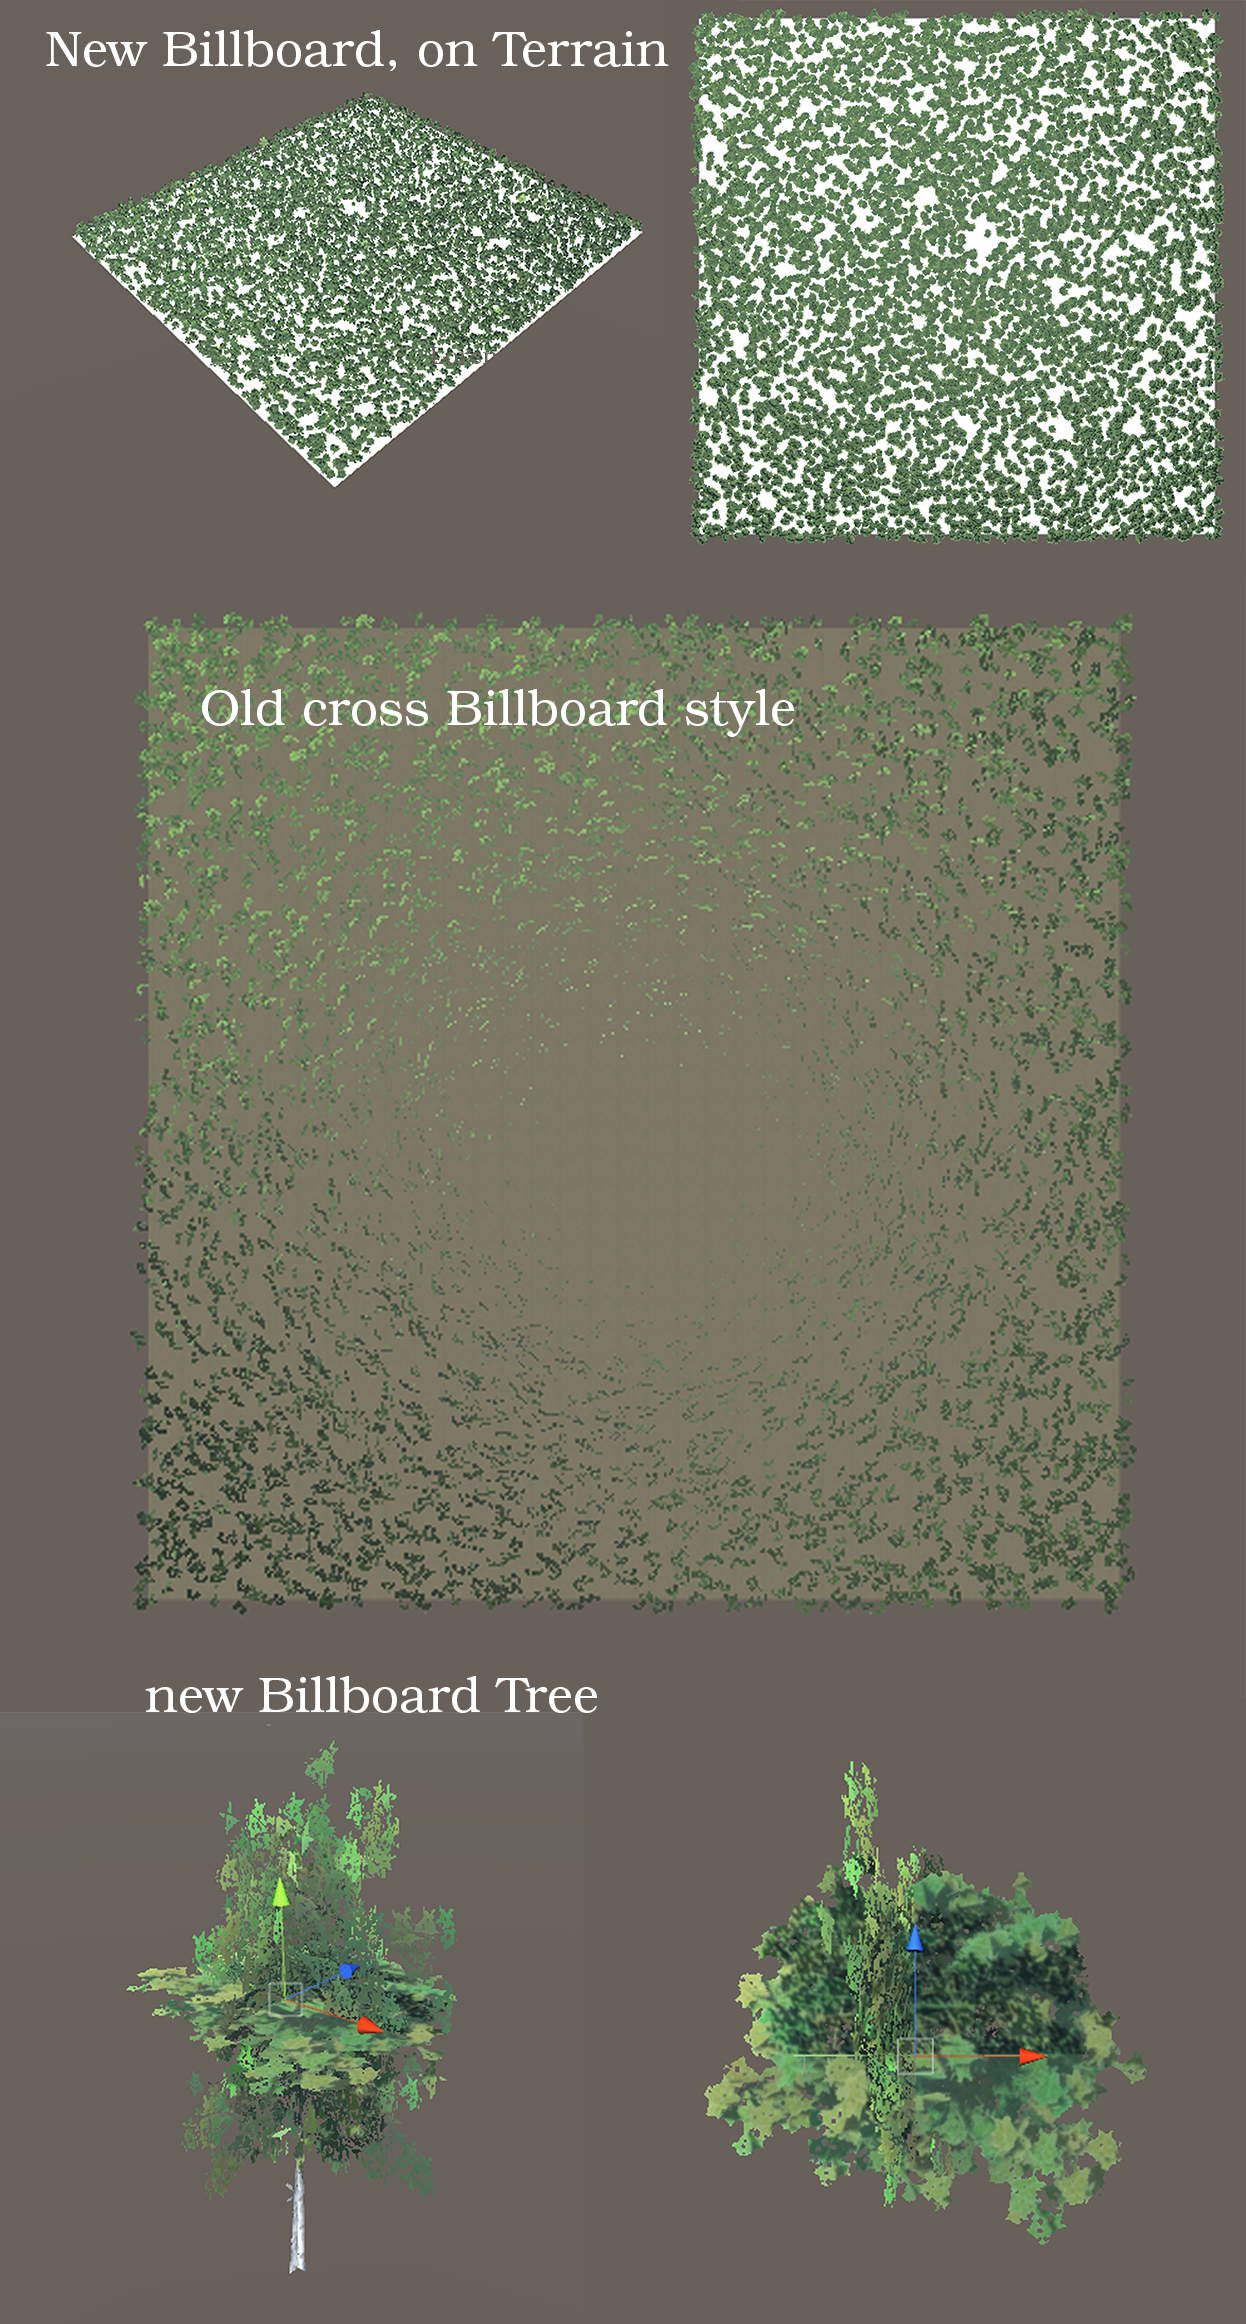 Billboard Test.png